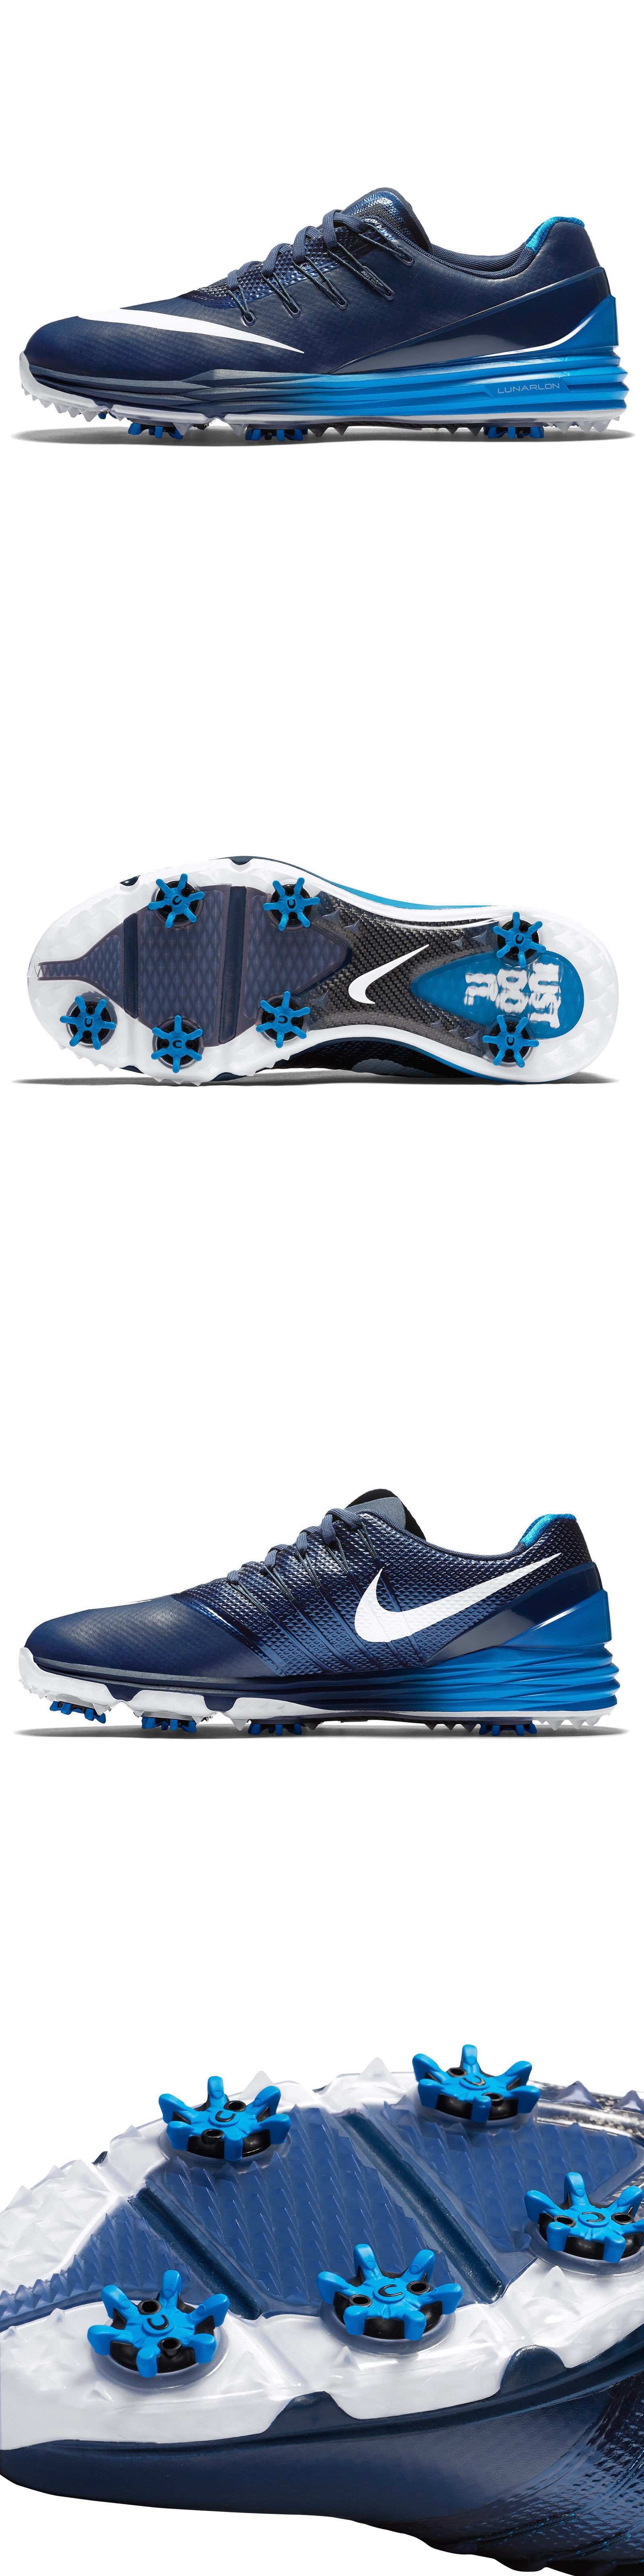 online store d1a55 f7ee5 Golf Shoes 181136  New Nike Golf Lunar Control 4 Mens Golfing Shoes Spikes  - Navy